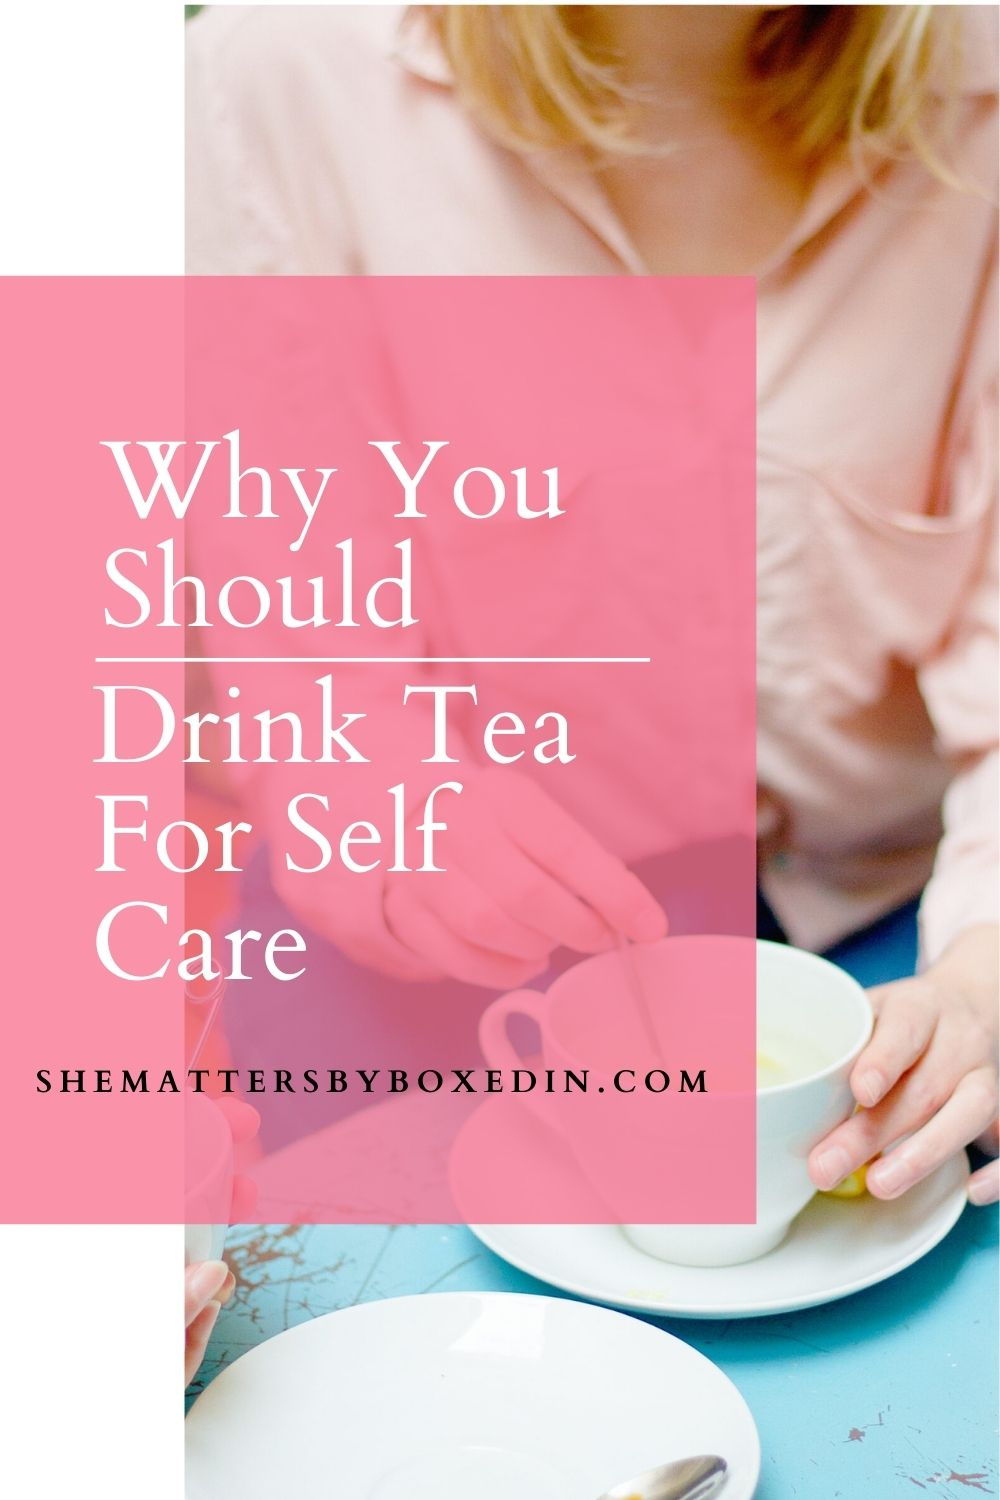 Why Should I Drink Tea?